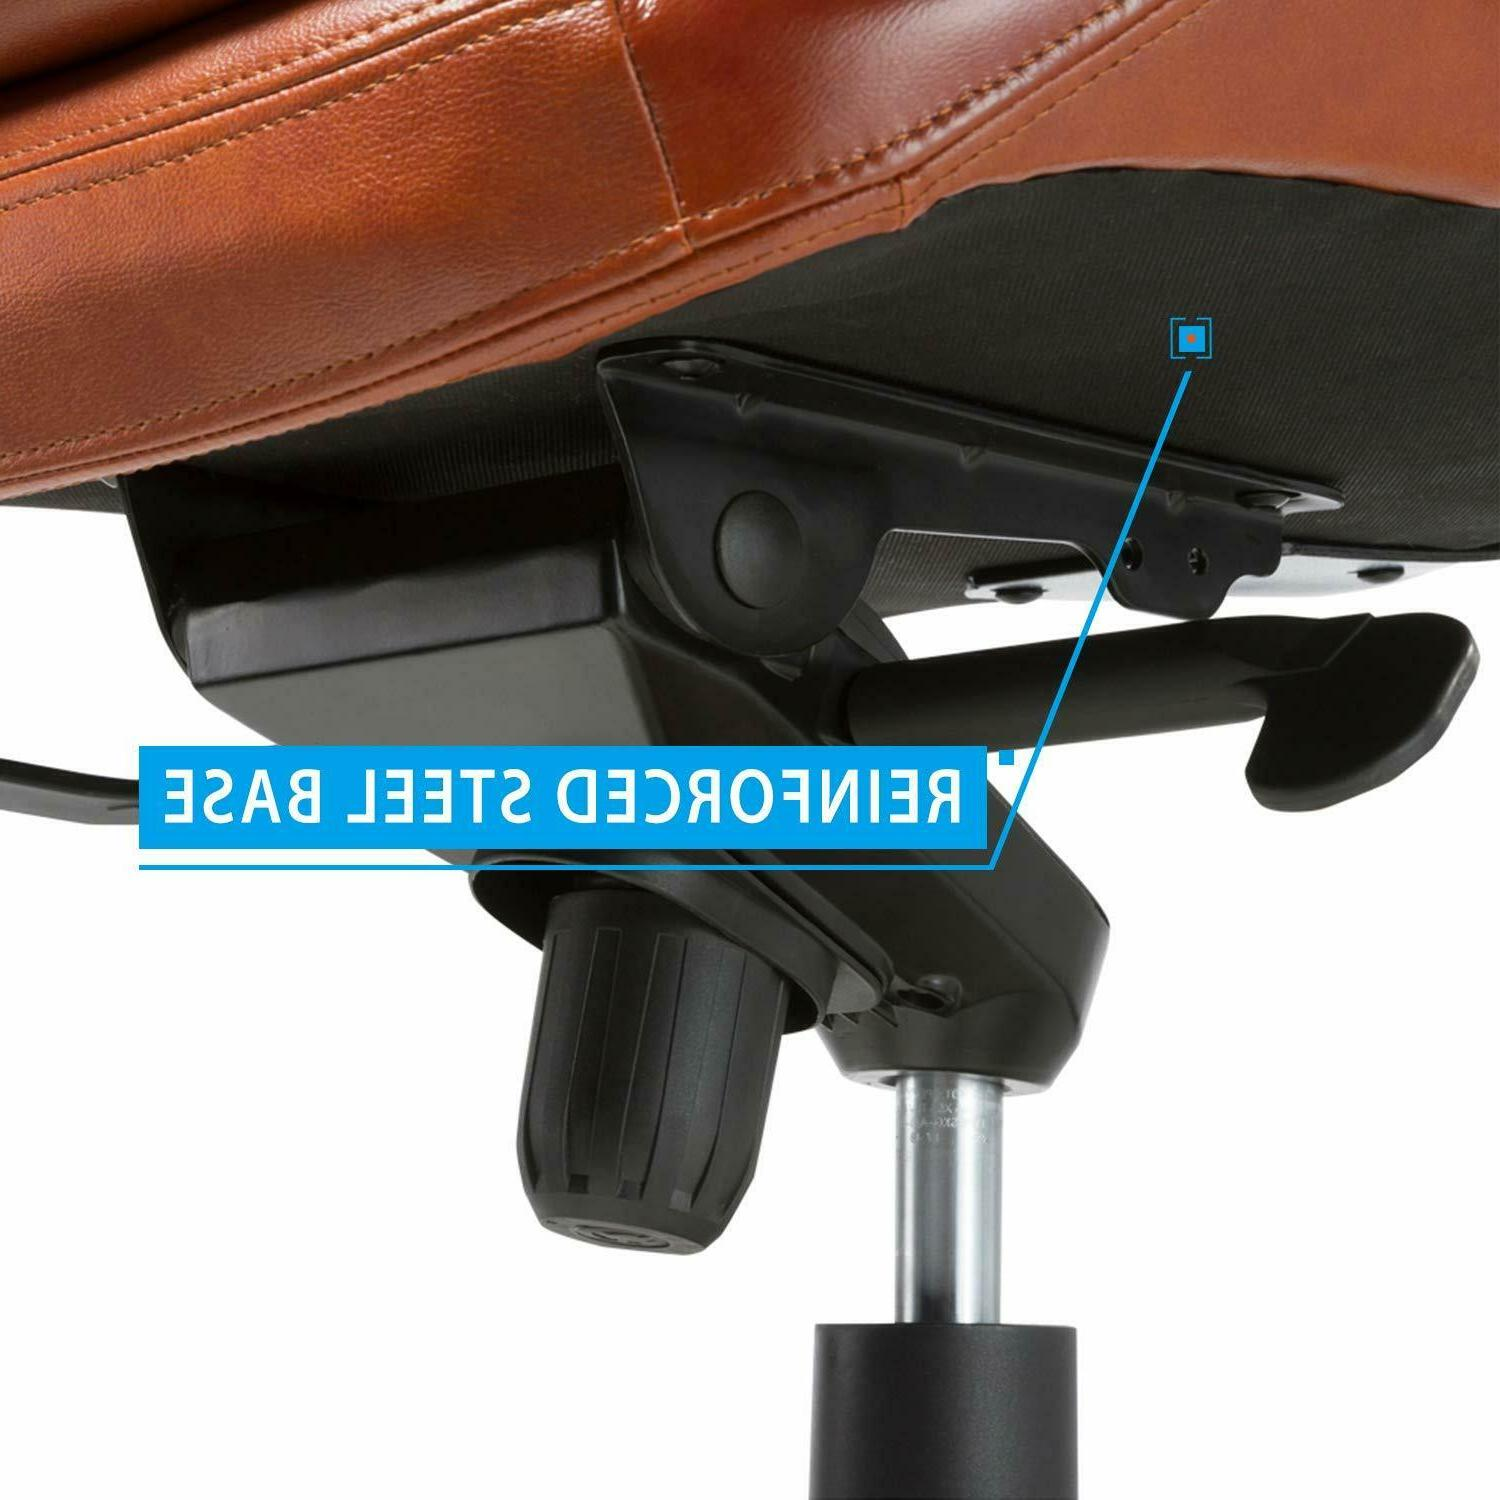 Executive Bonded Chair Comfort Seat Managerial